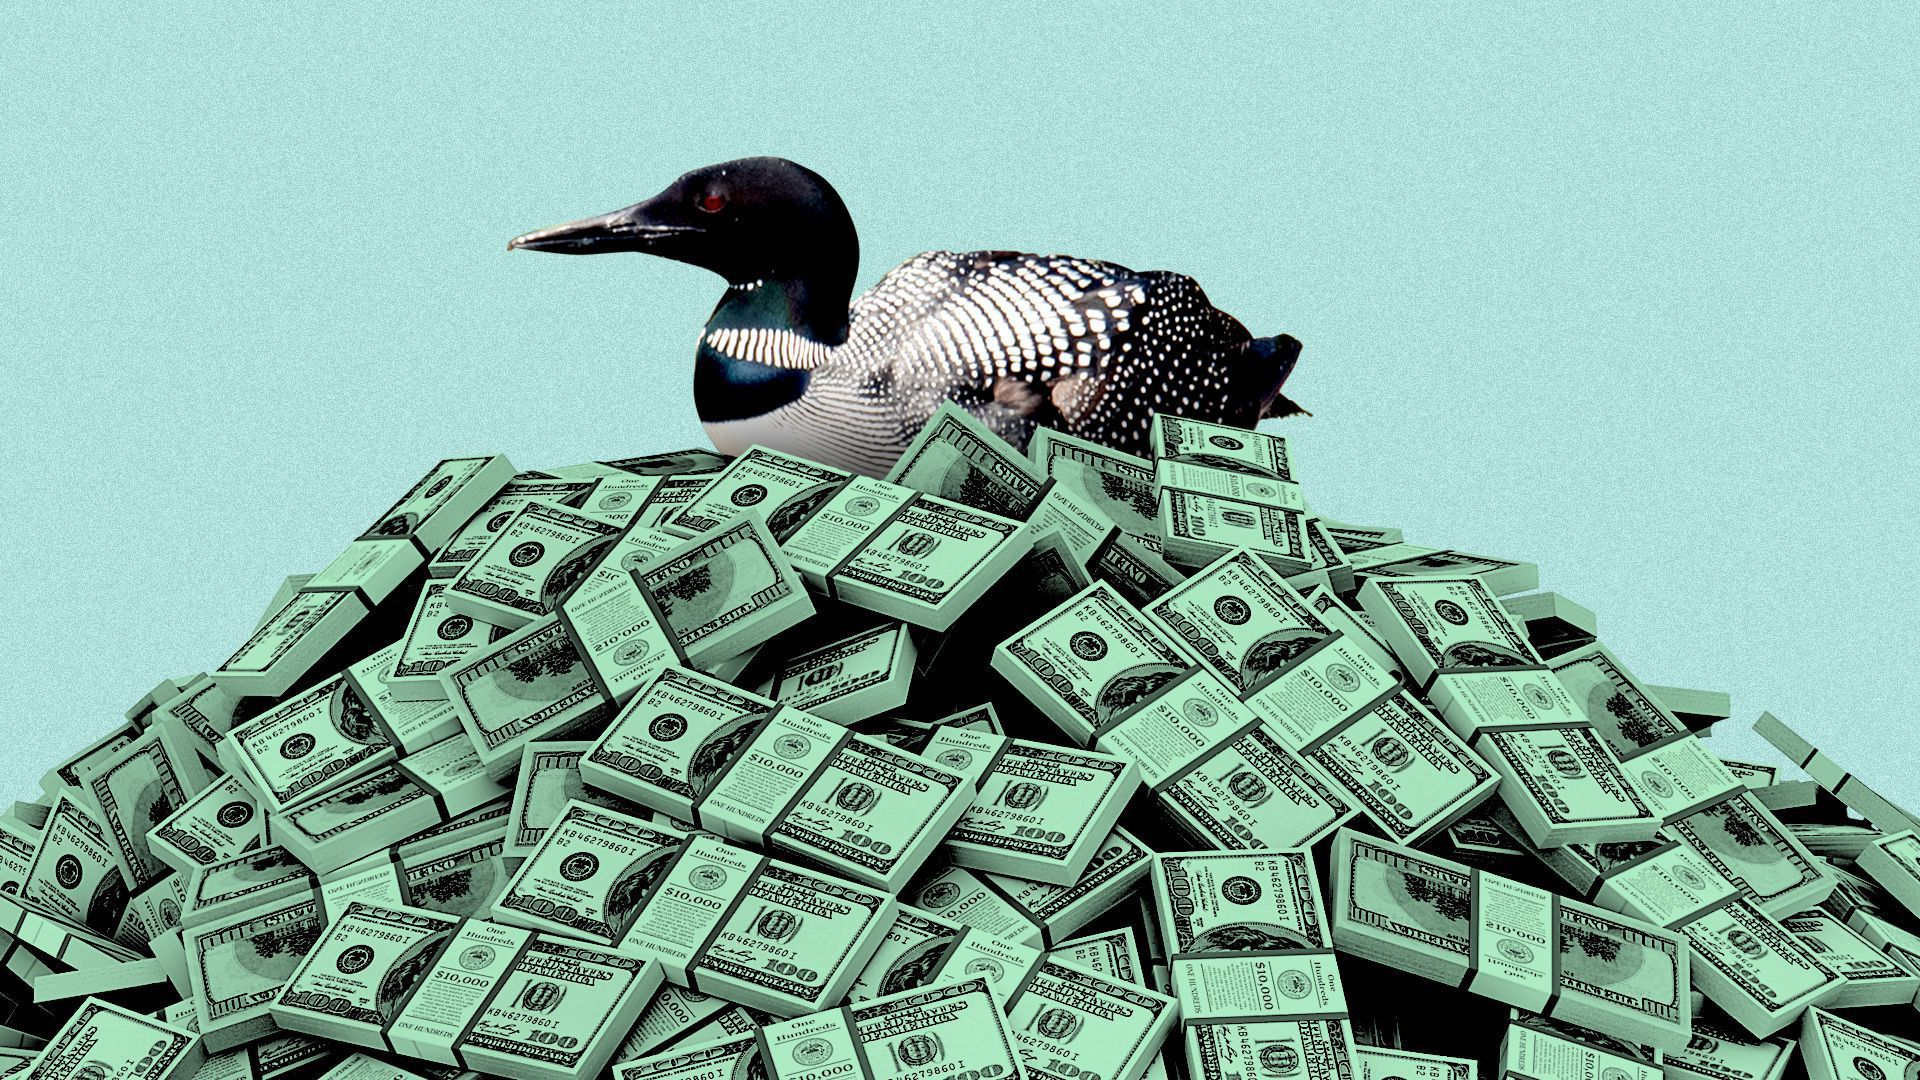 A duck sits on top of a pile of money.